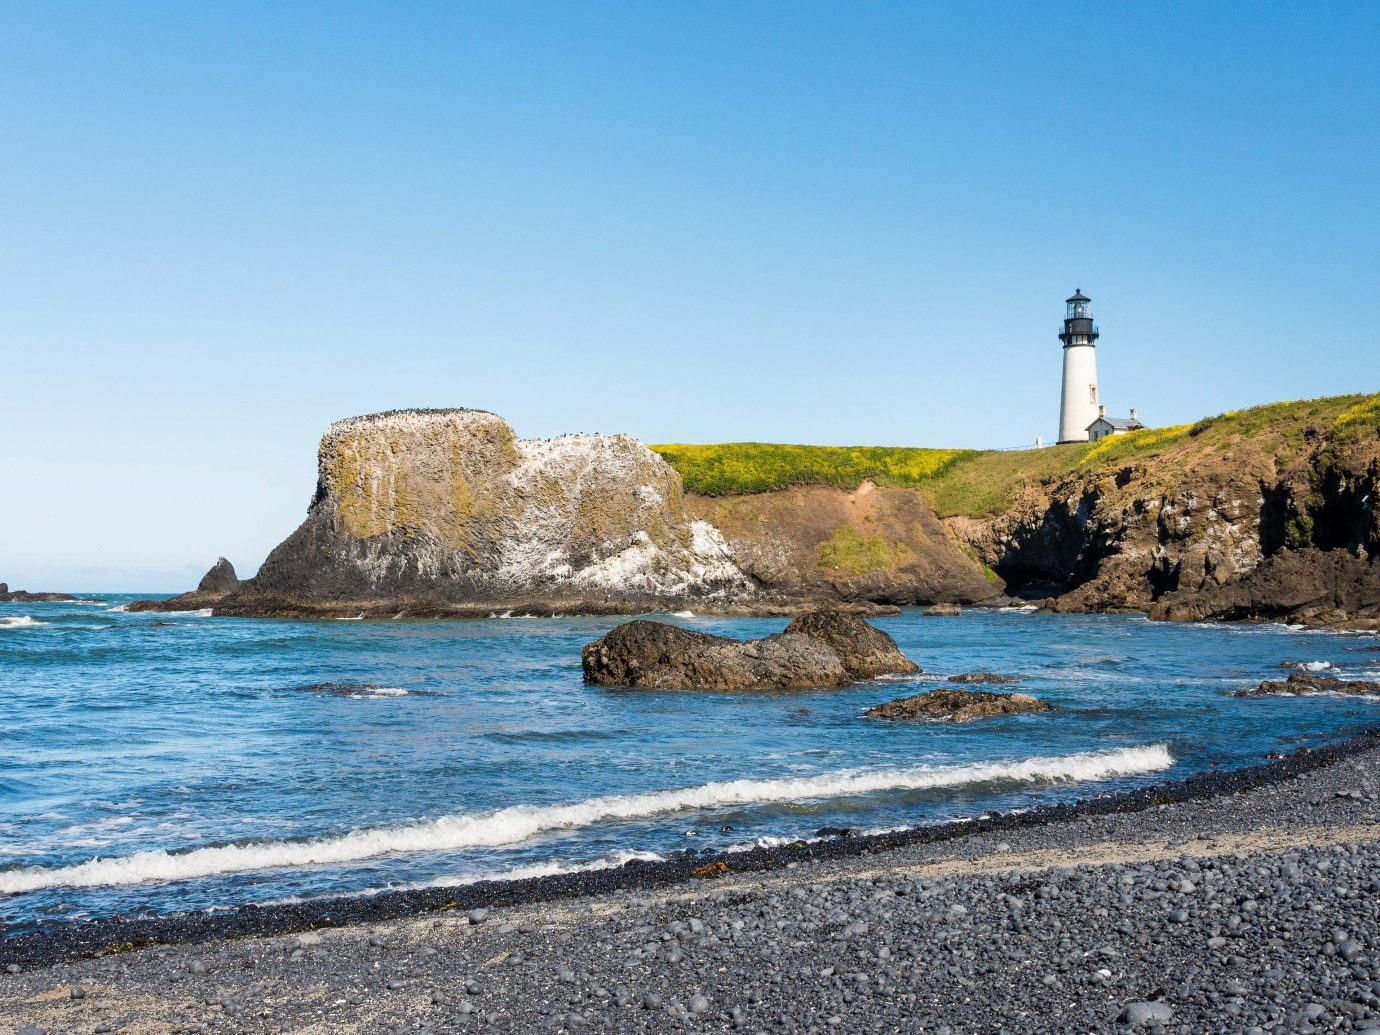 America Beach Trip Ideas West Coast Coast Sea headland lighthouse shore promontory coastal and oceanic landforms sky tower cape Ocean bay cove